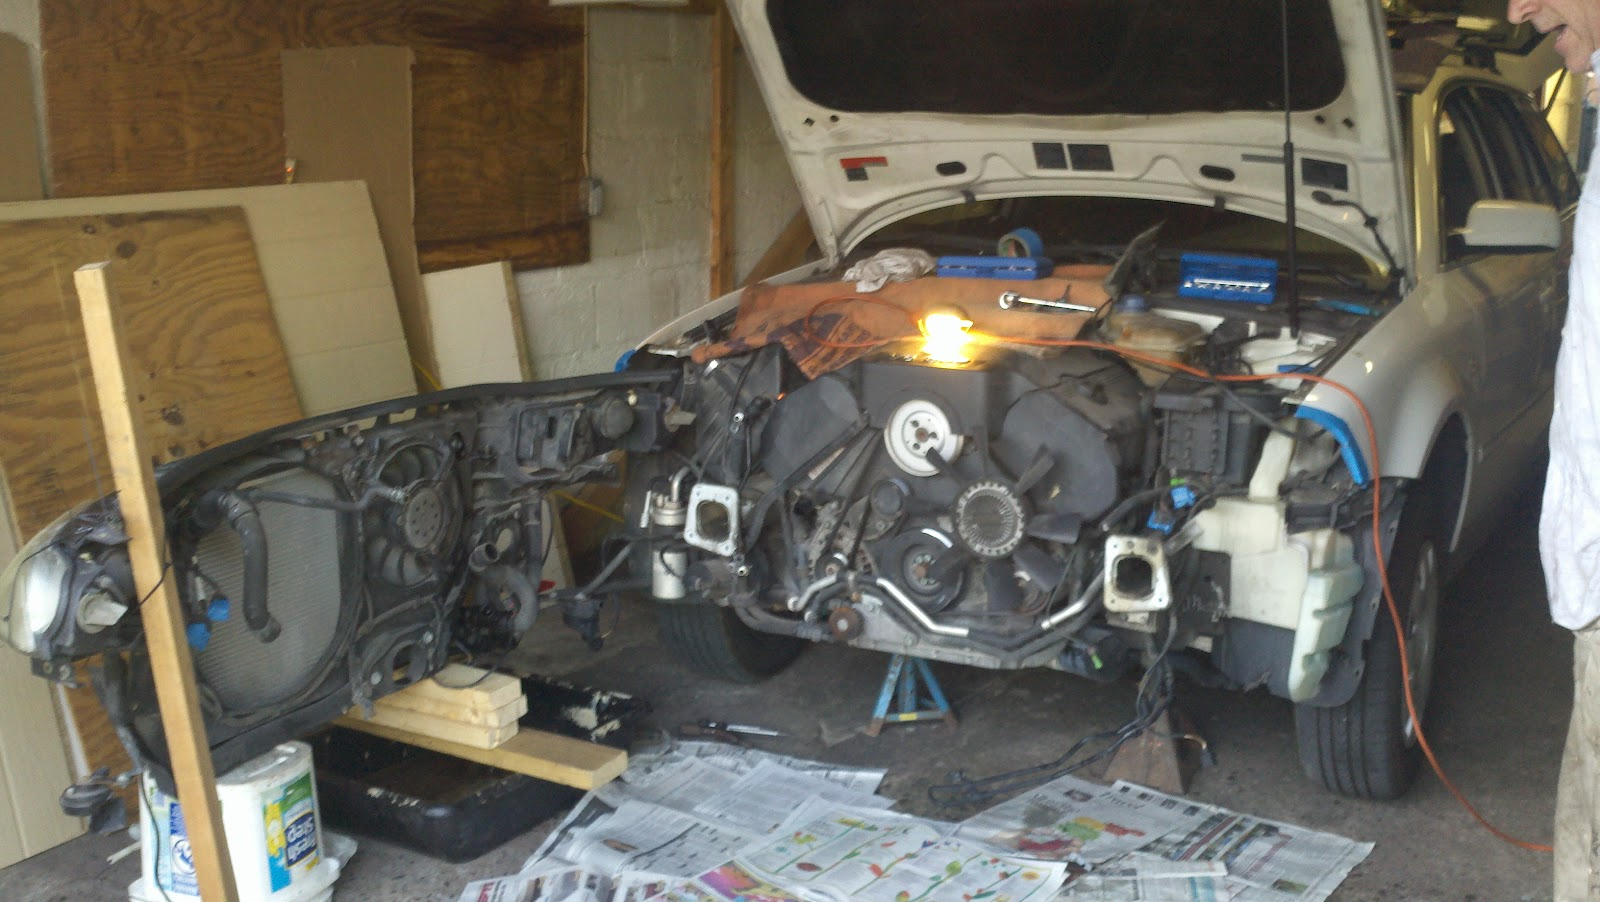 a couple of friends helped to change the timing belt, valve cover gaskets,  and a plethora of tensioners, pulleys, etc  on my 2002 vw passat wagon v6  awd